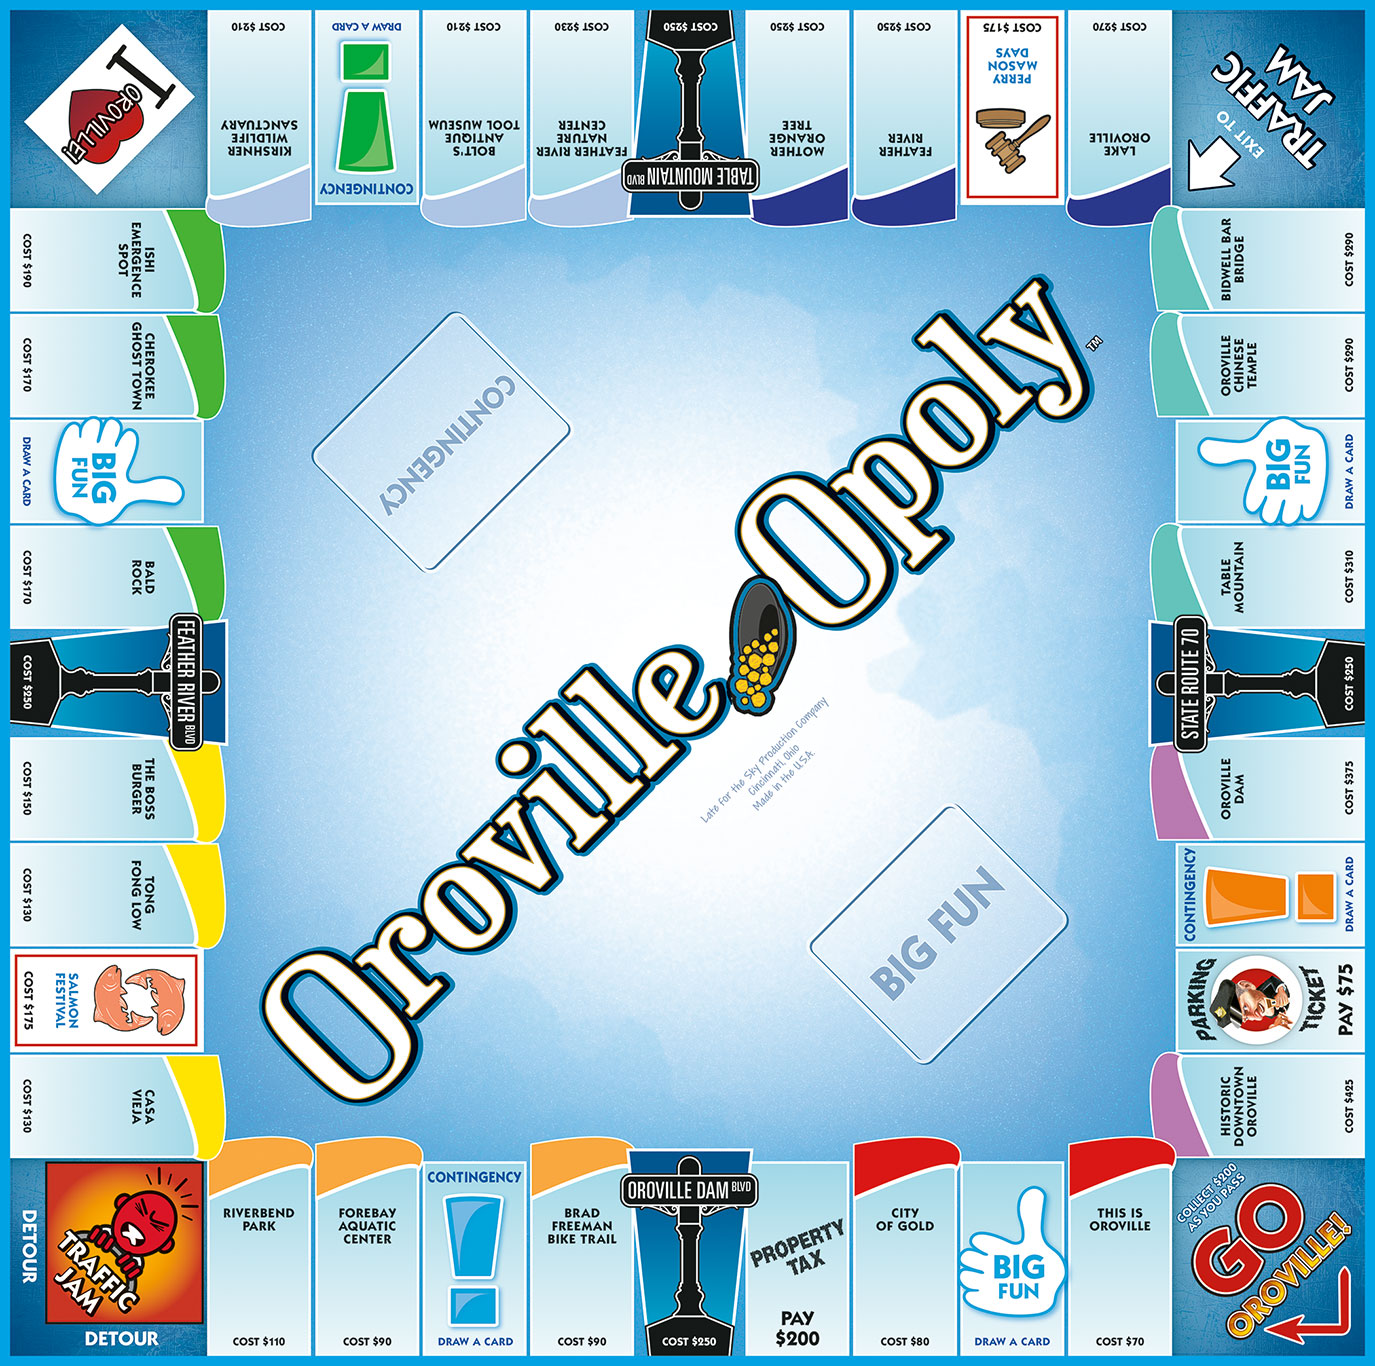 OROVILLE-OPOLY Board Game